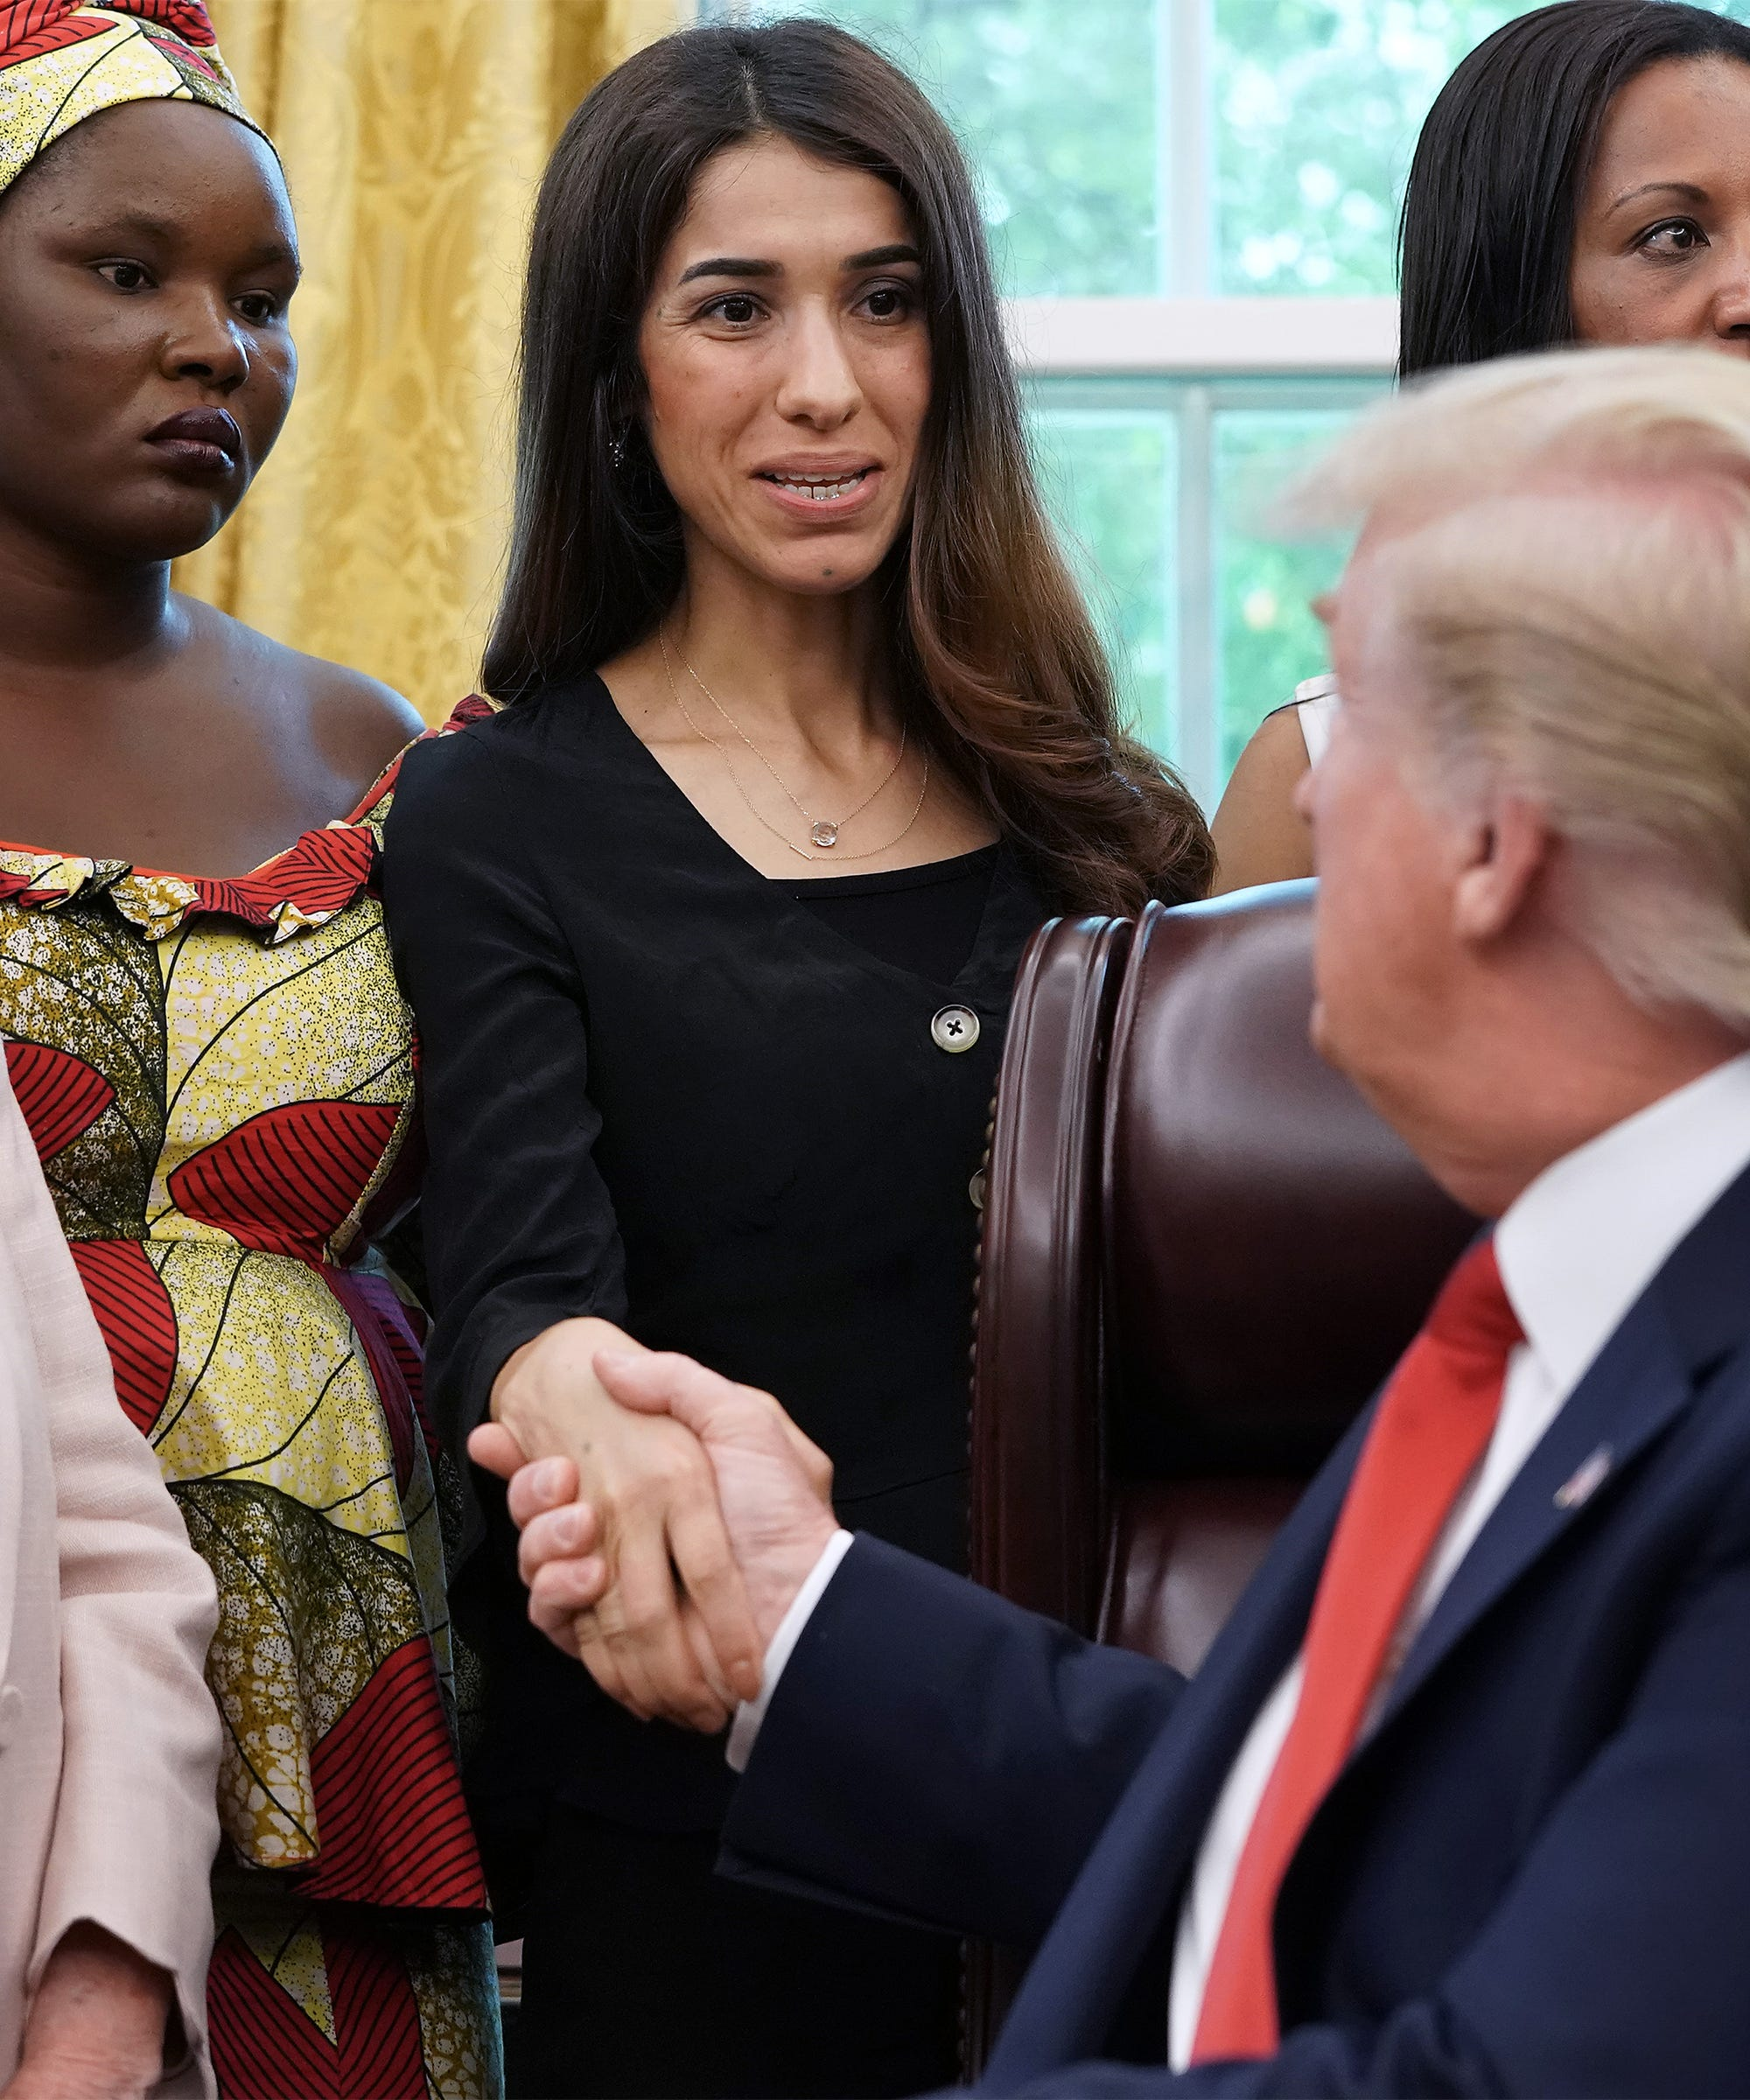 Trump Faces Backlash For Asking Activist Nadia Murad Why She Won The Nobel Peace Prize